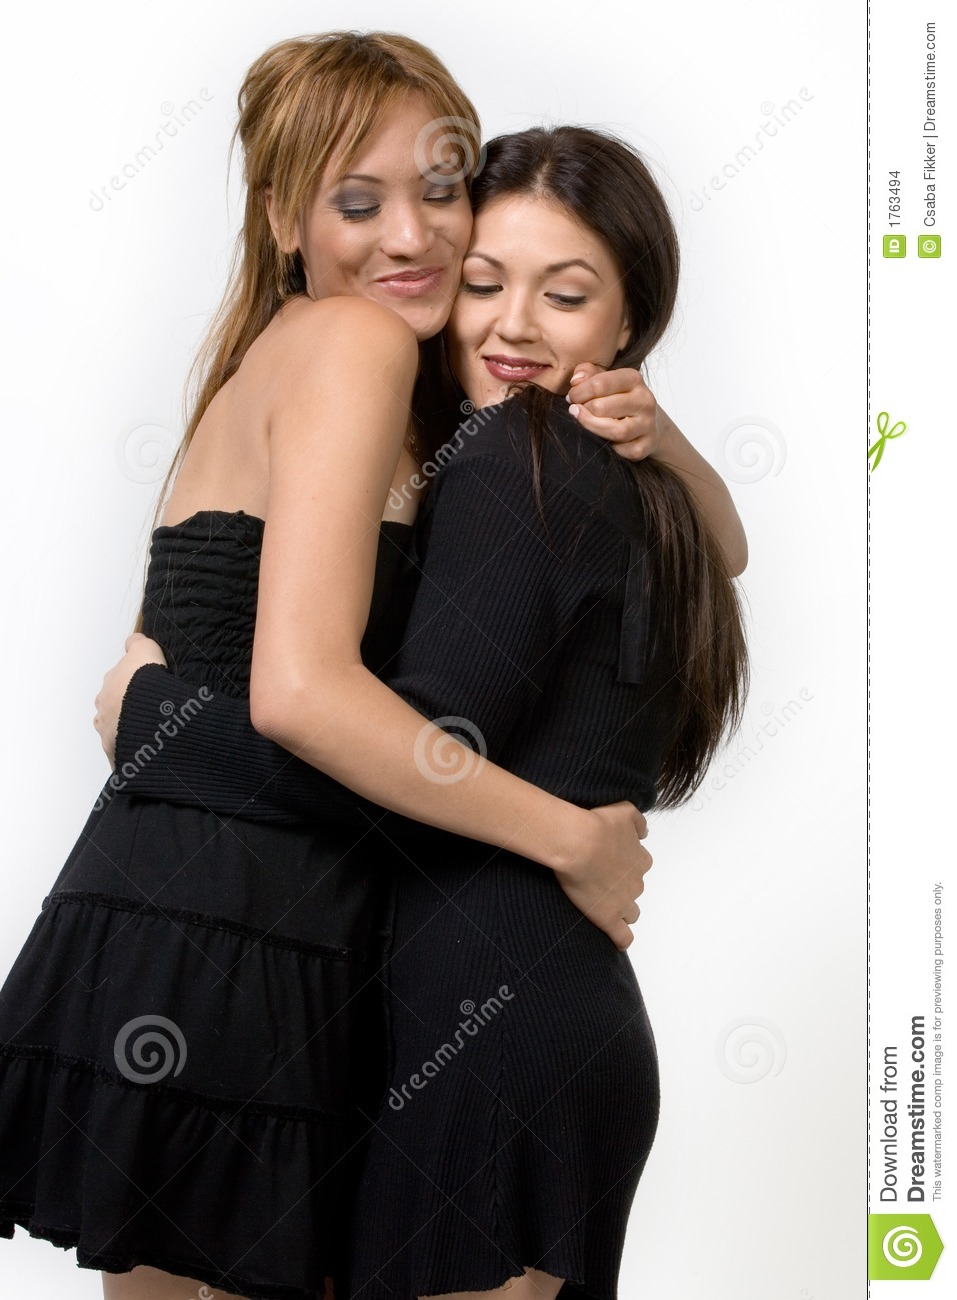 two cute ladies hugging stock photo. image of lady, friendly - 1763494